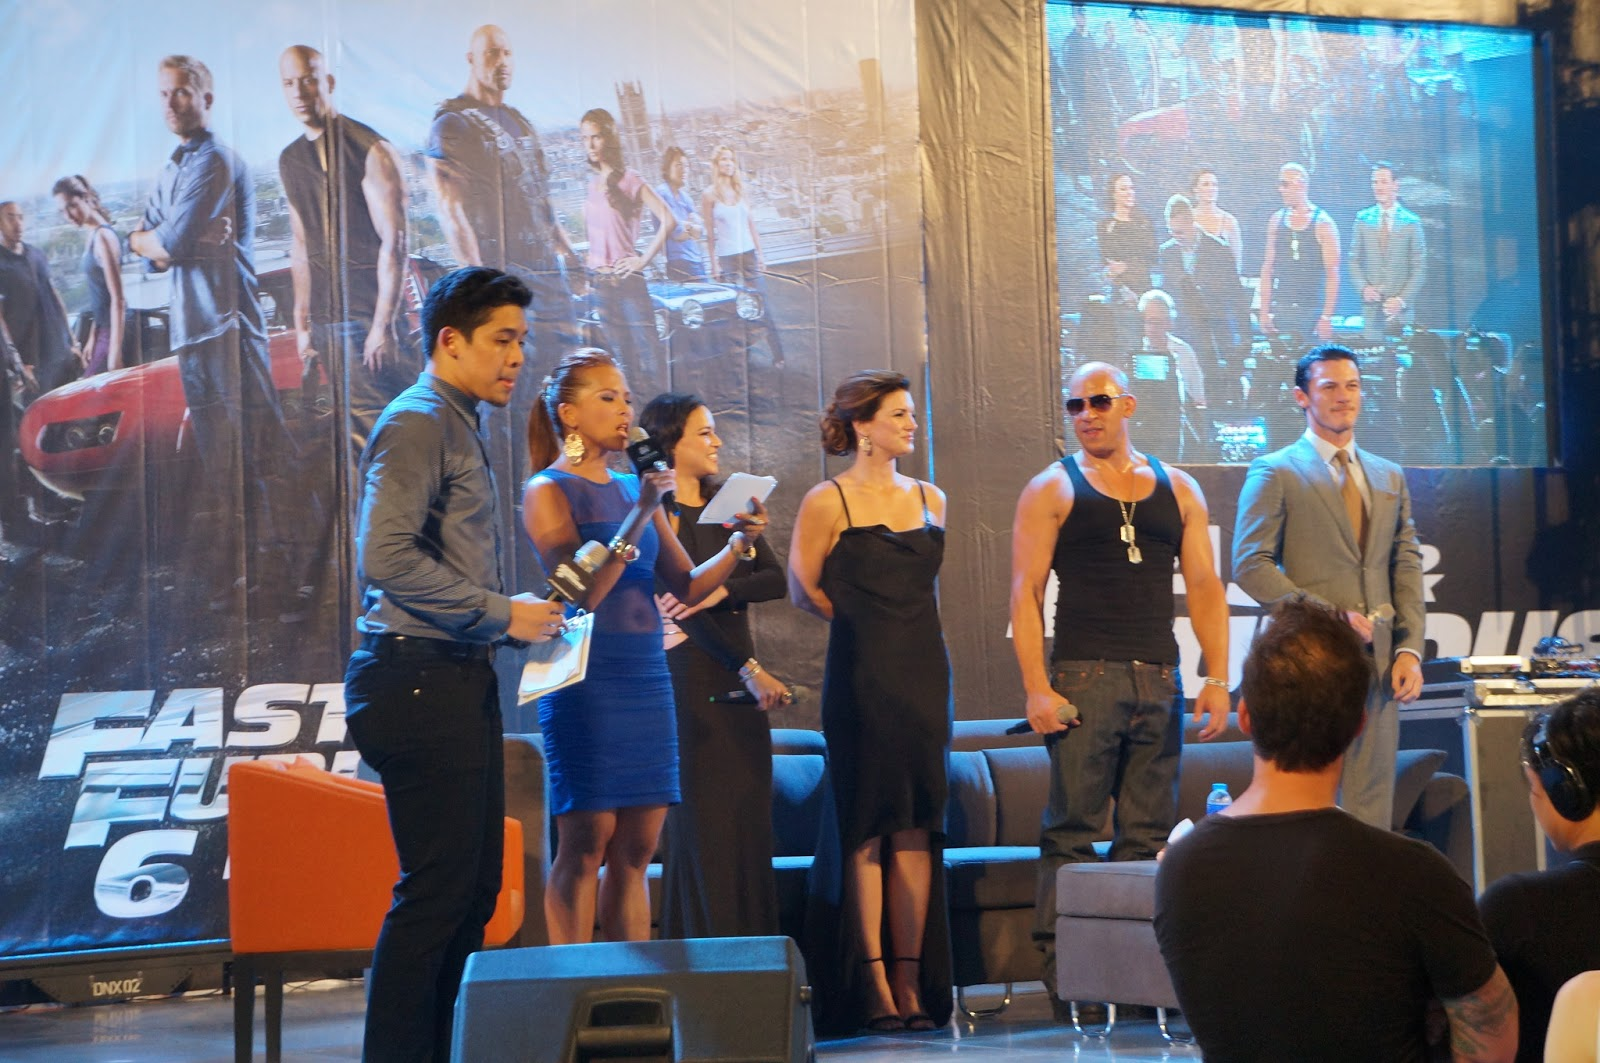 Vin diesel and other cast of fast and furious 6 graced philippine premiere at moa